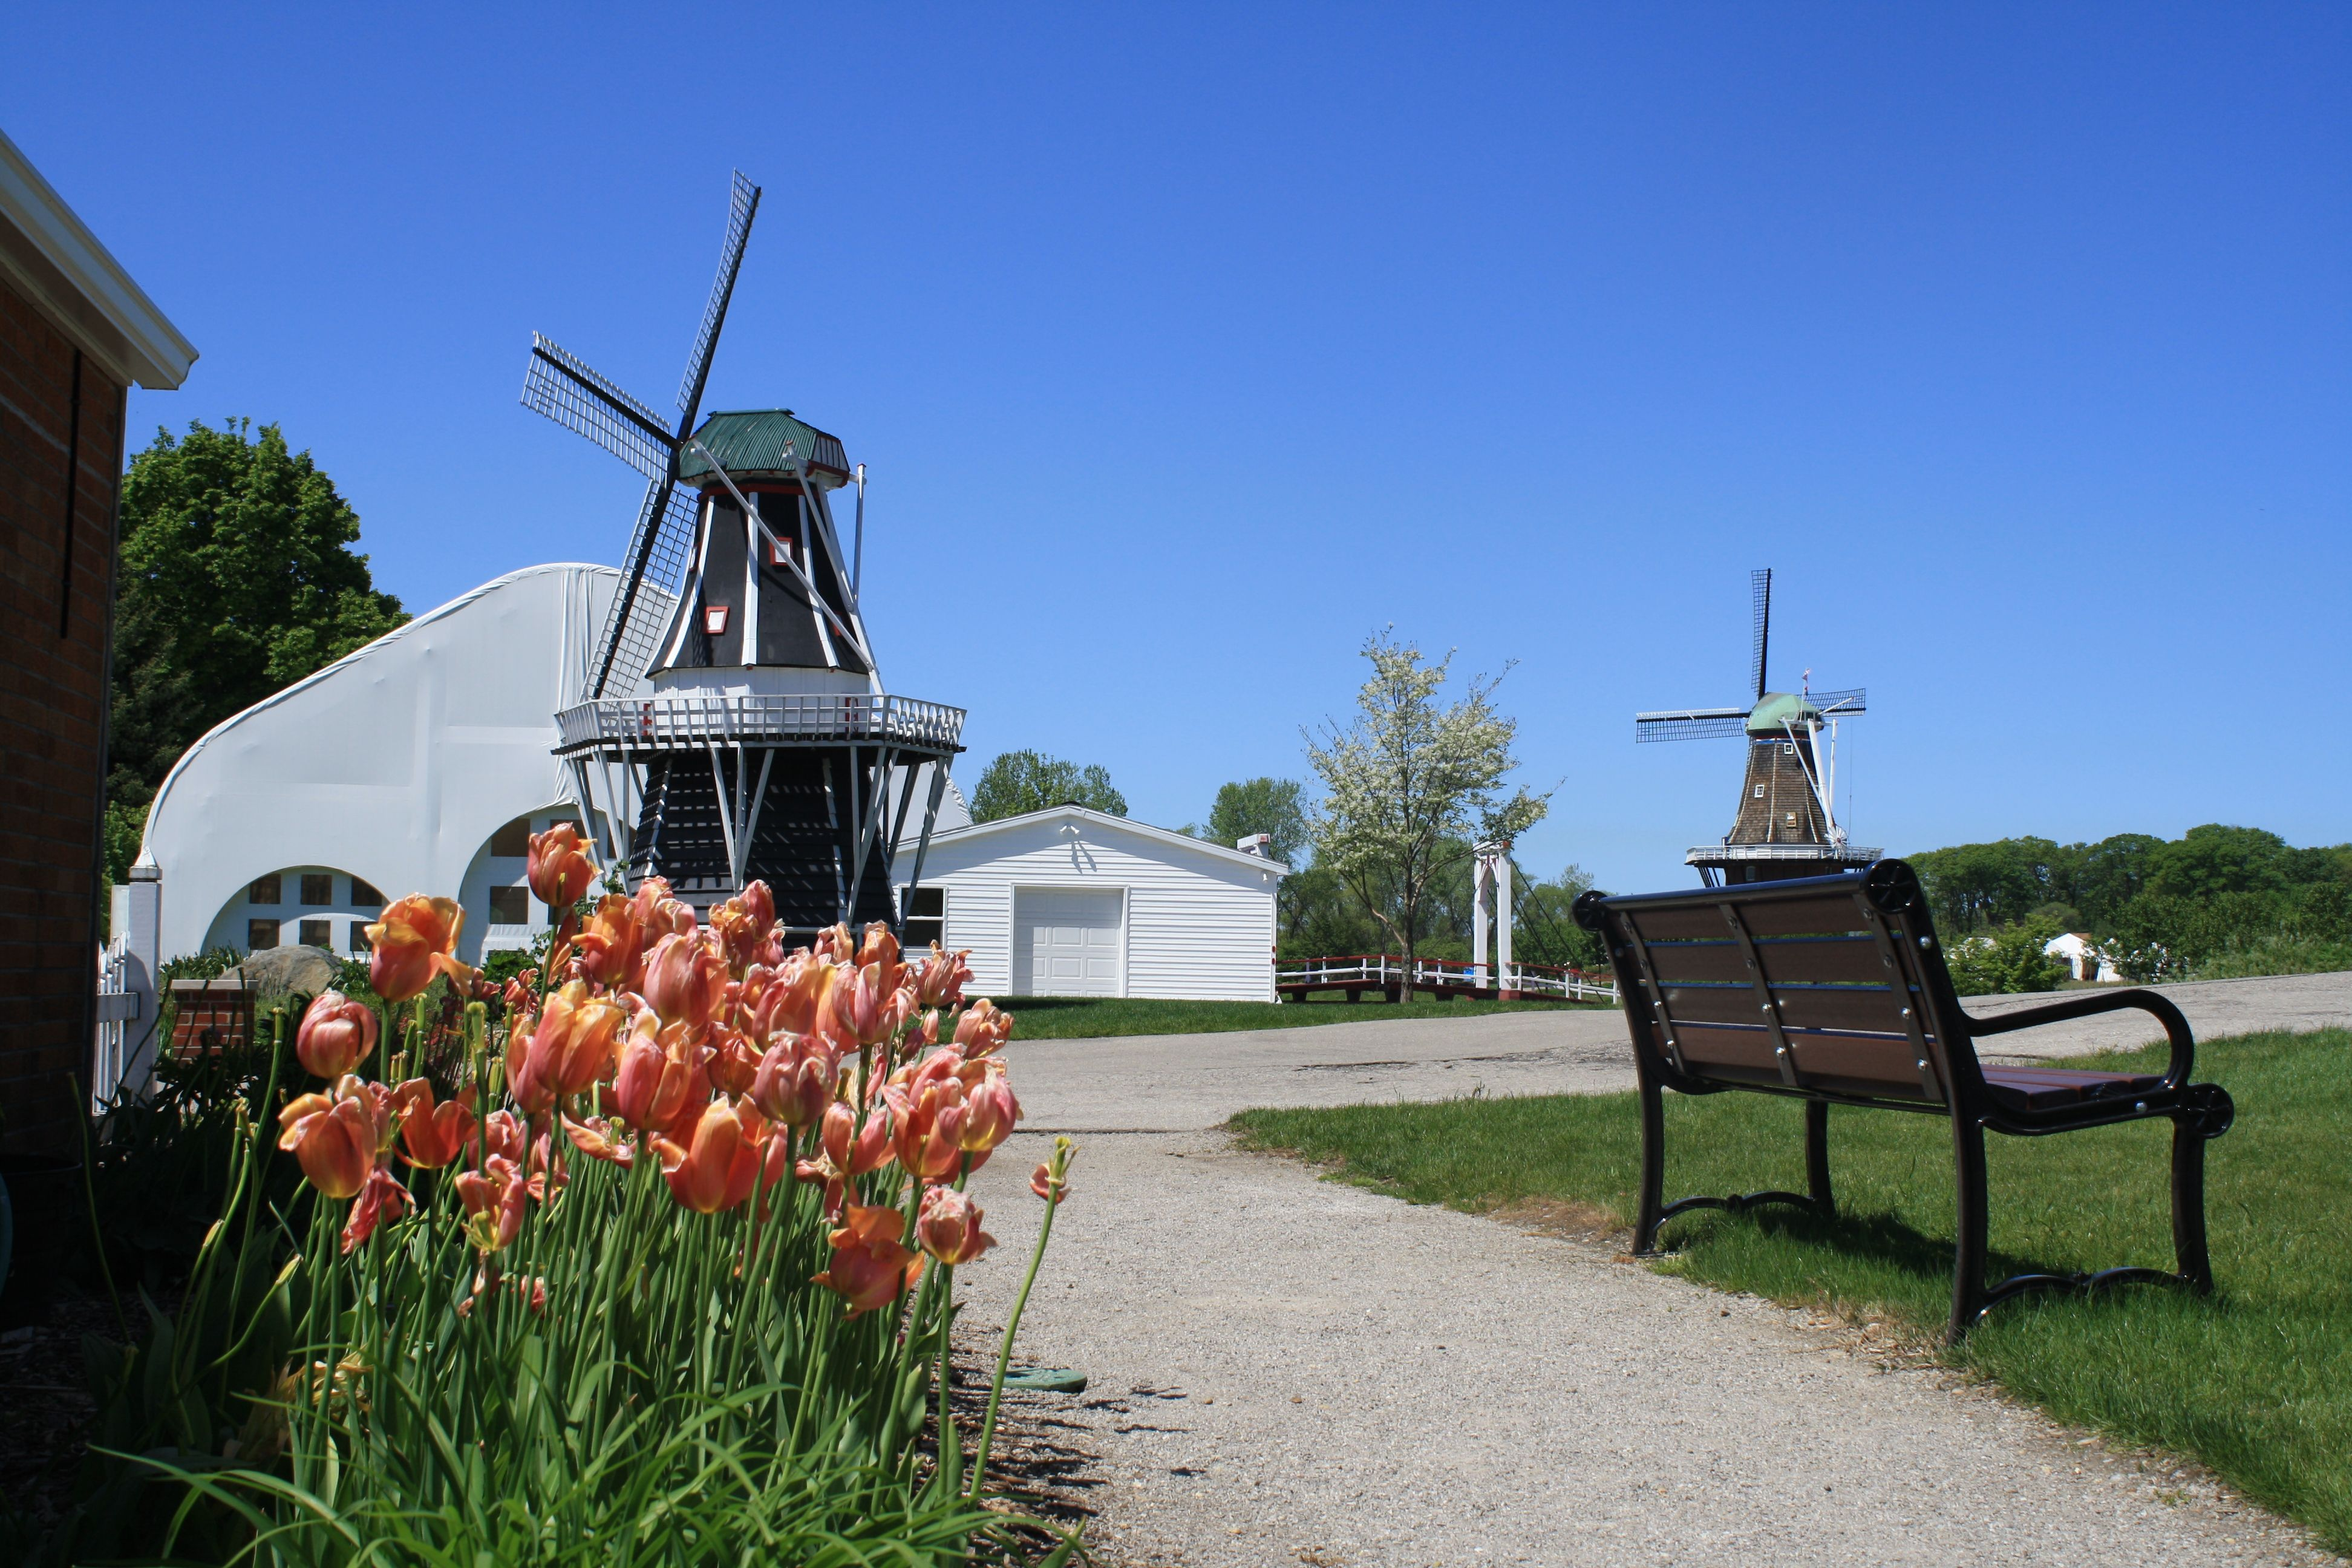 Windmills & Tulips Holland Michigan   ~*A Place I Call Home*~   Pinte ...